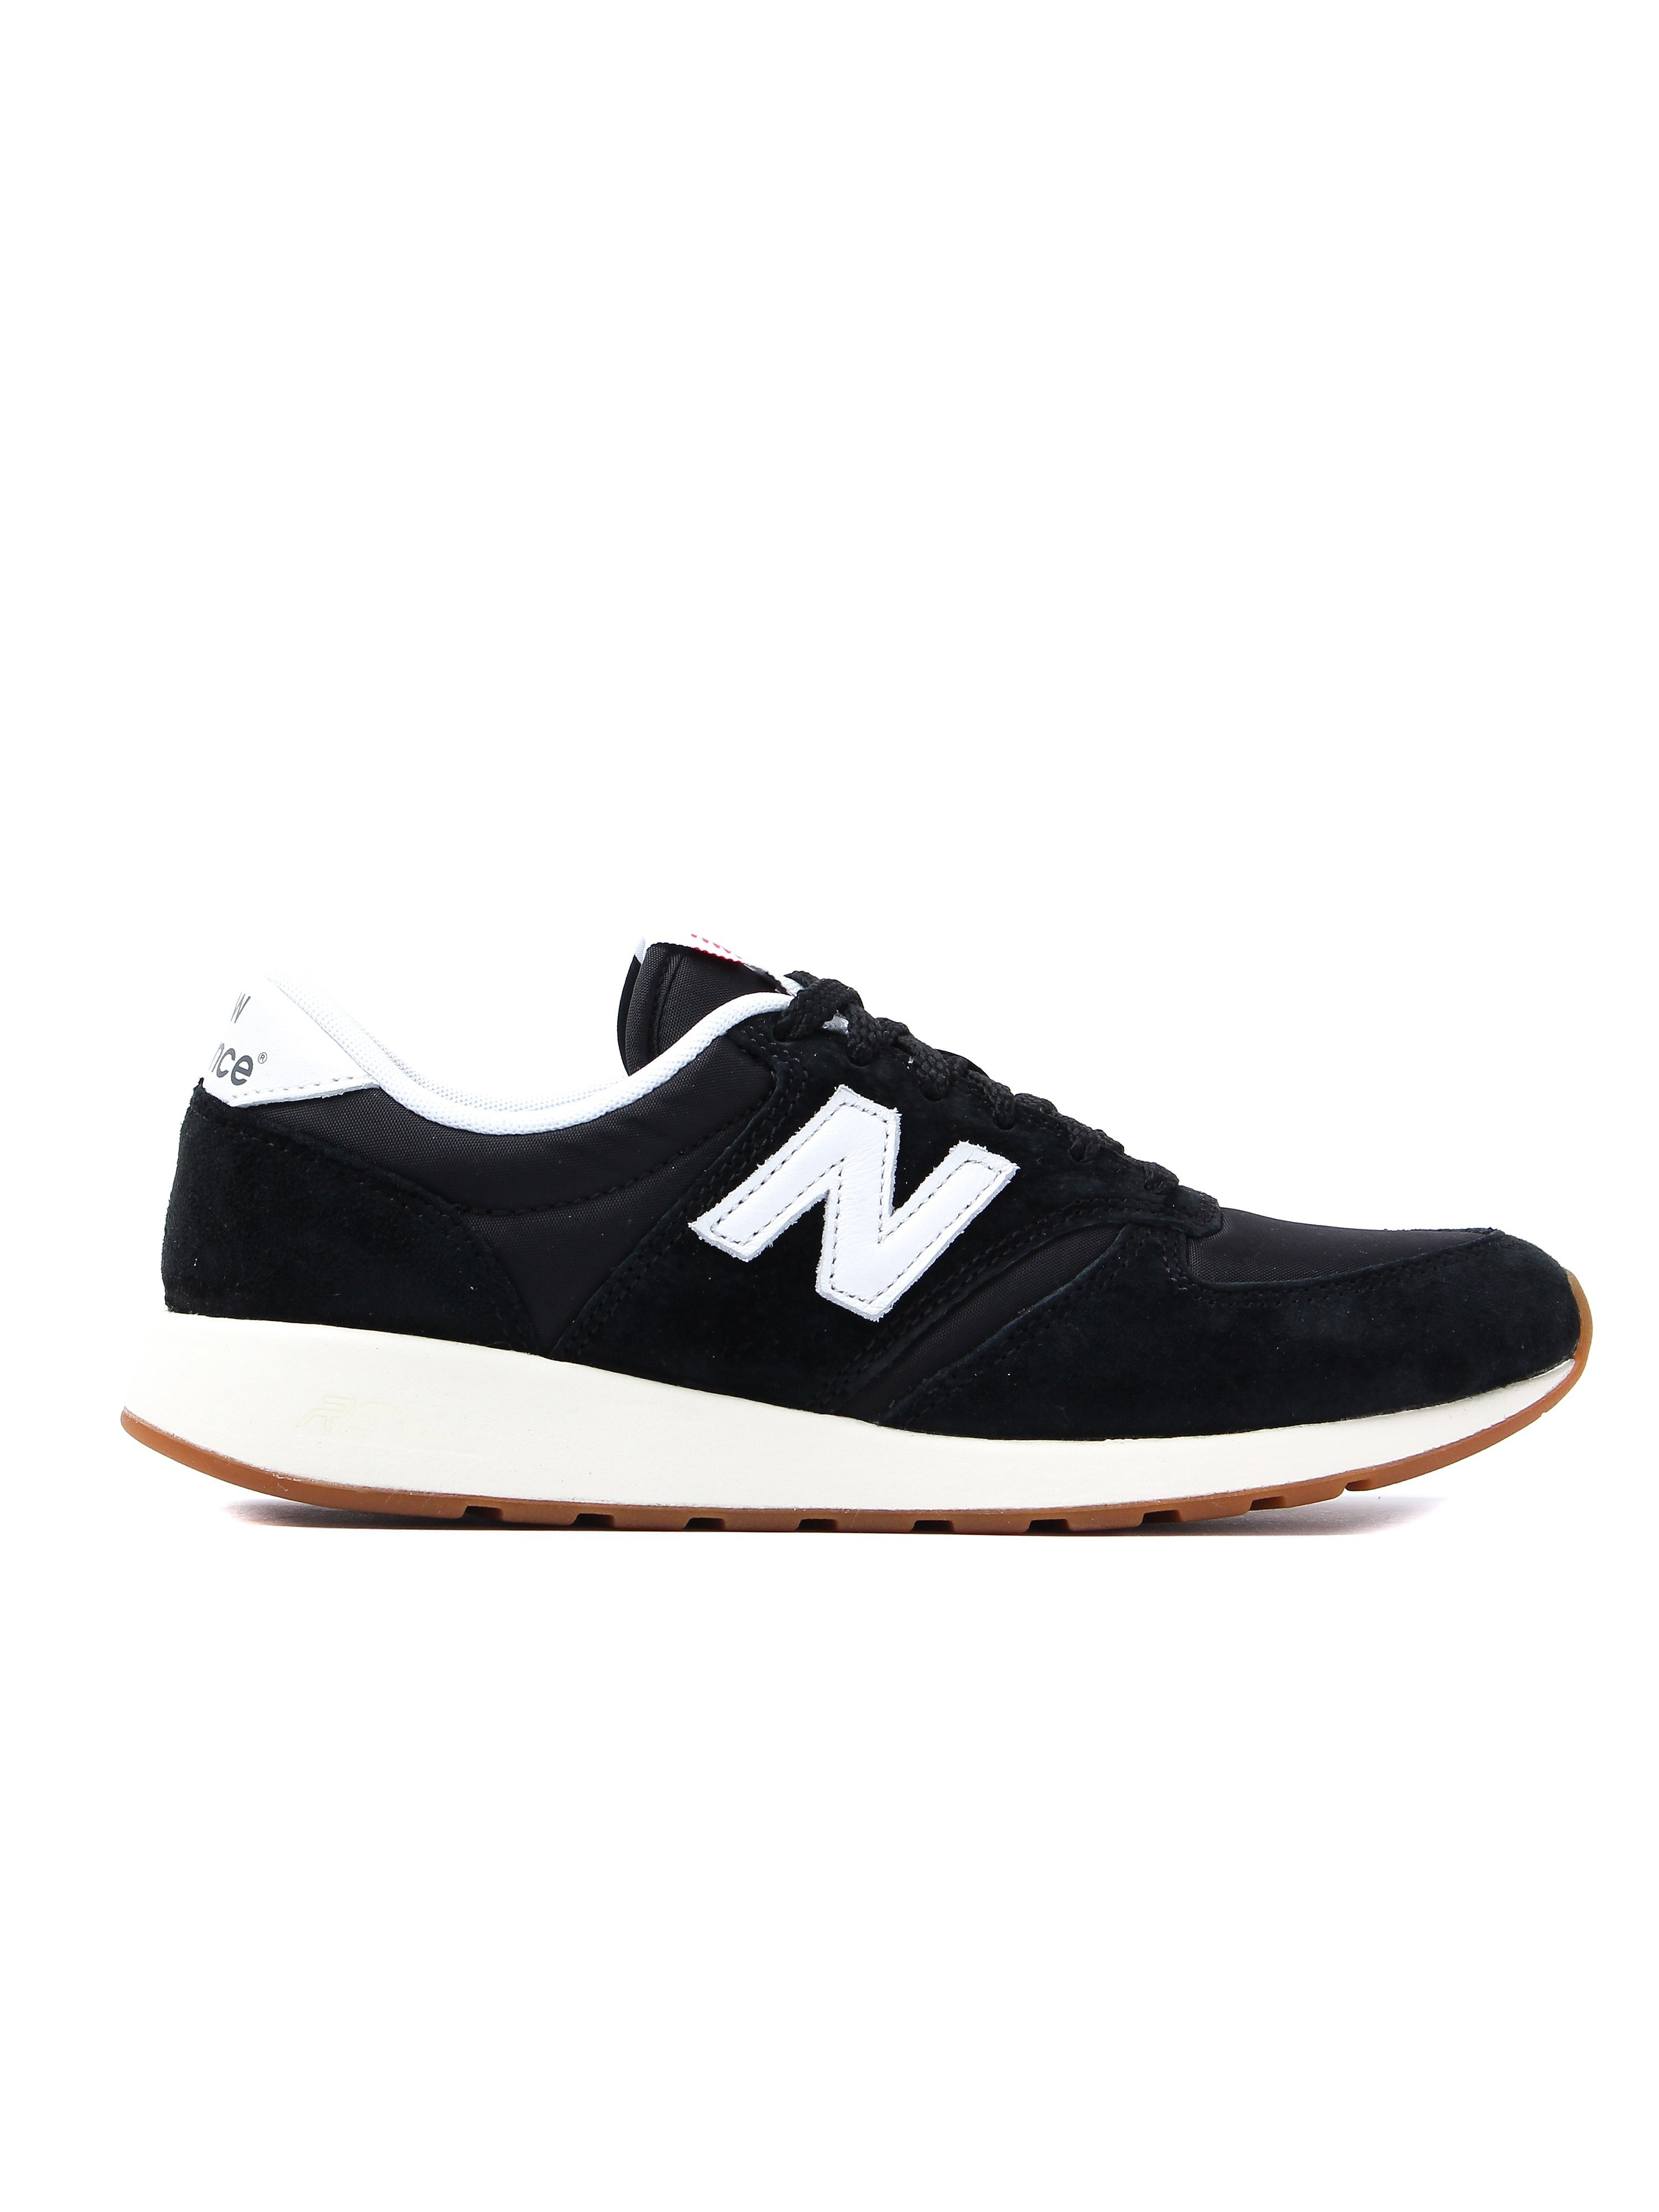 New Balance Women's 420 Re-engineered Low Top Trainers - Black & White Suede